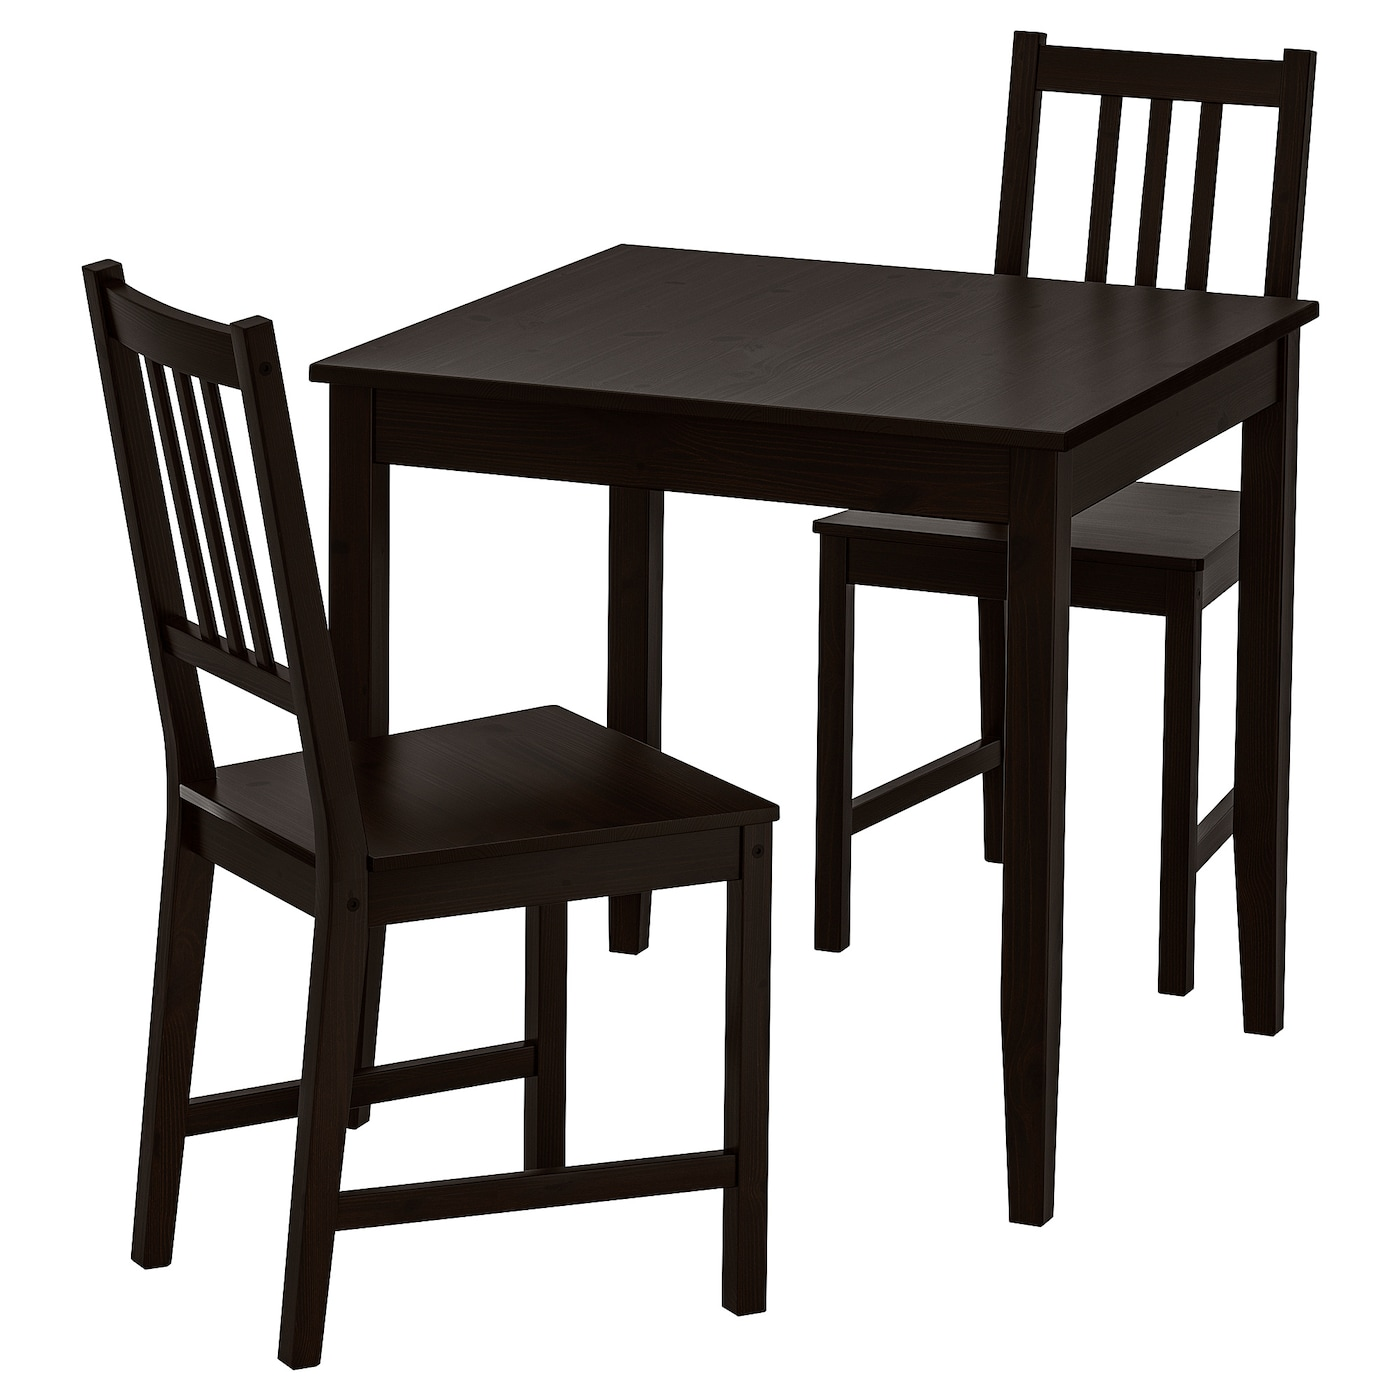 ensembles tables et chaises max 2 pers ikea. Black Bedroom Furniture Sets. Home Design Ideas